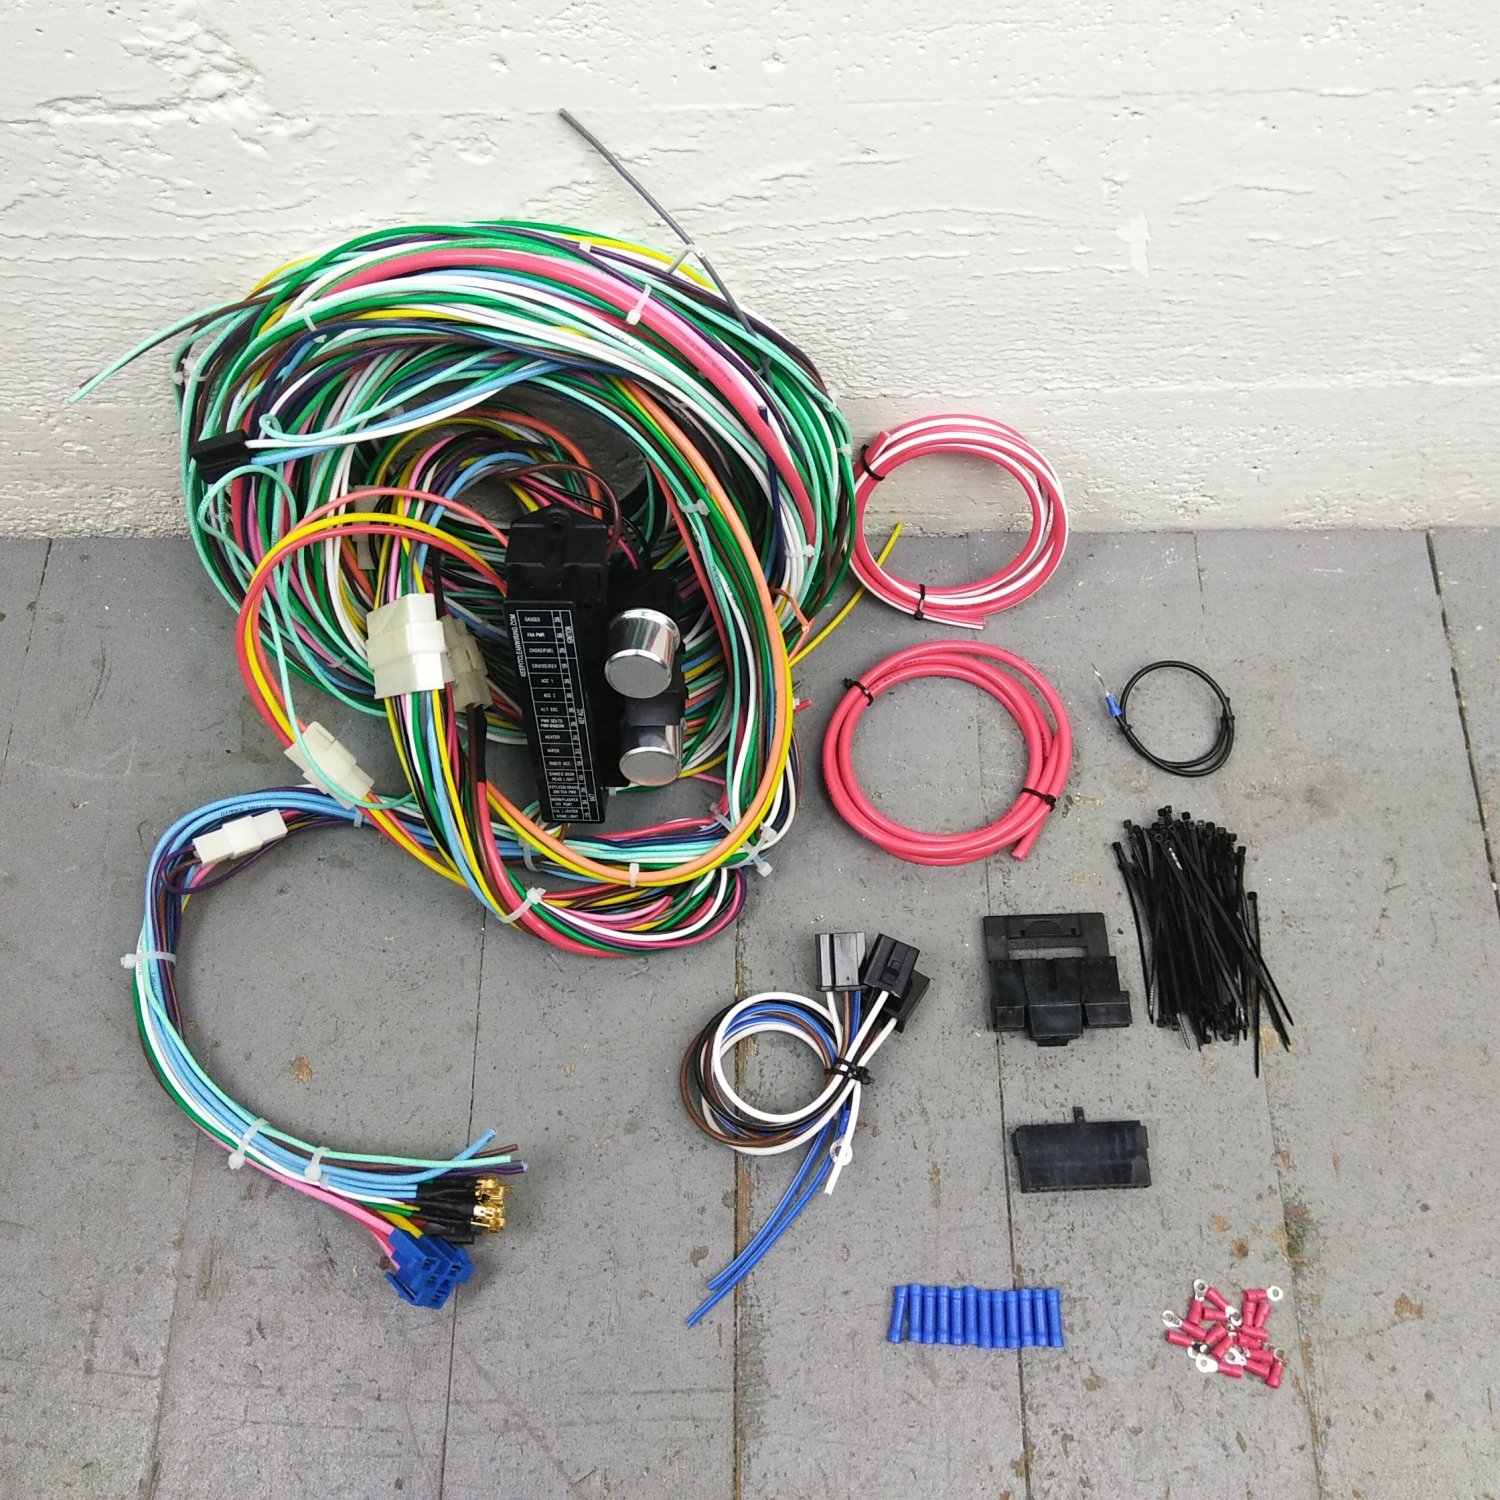 1960 1970 Mercury Cougar Wire Harness Upgrade Kit Fits Painless Wiring Tool Terminal Fuse Bar Product Description C